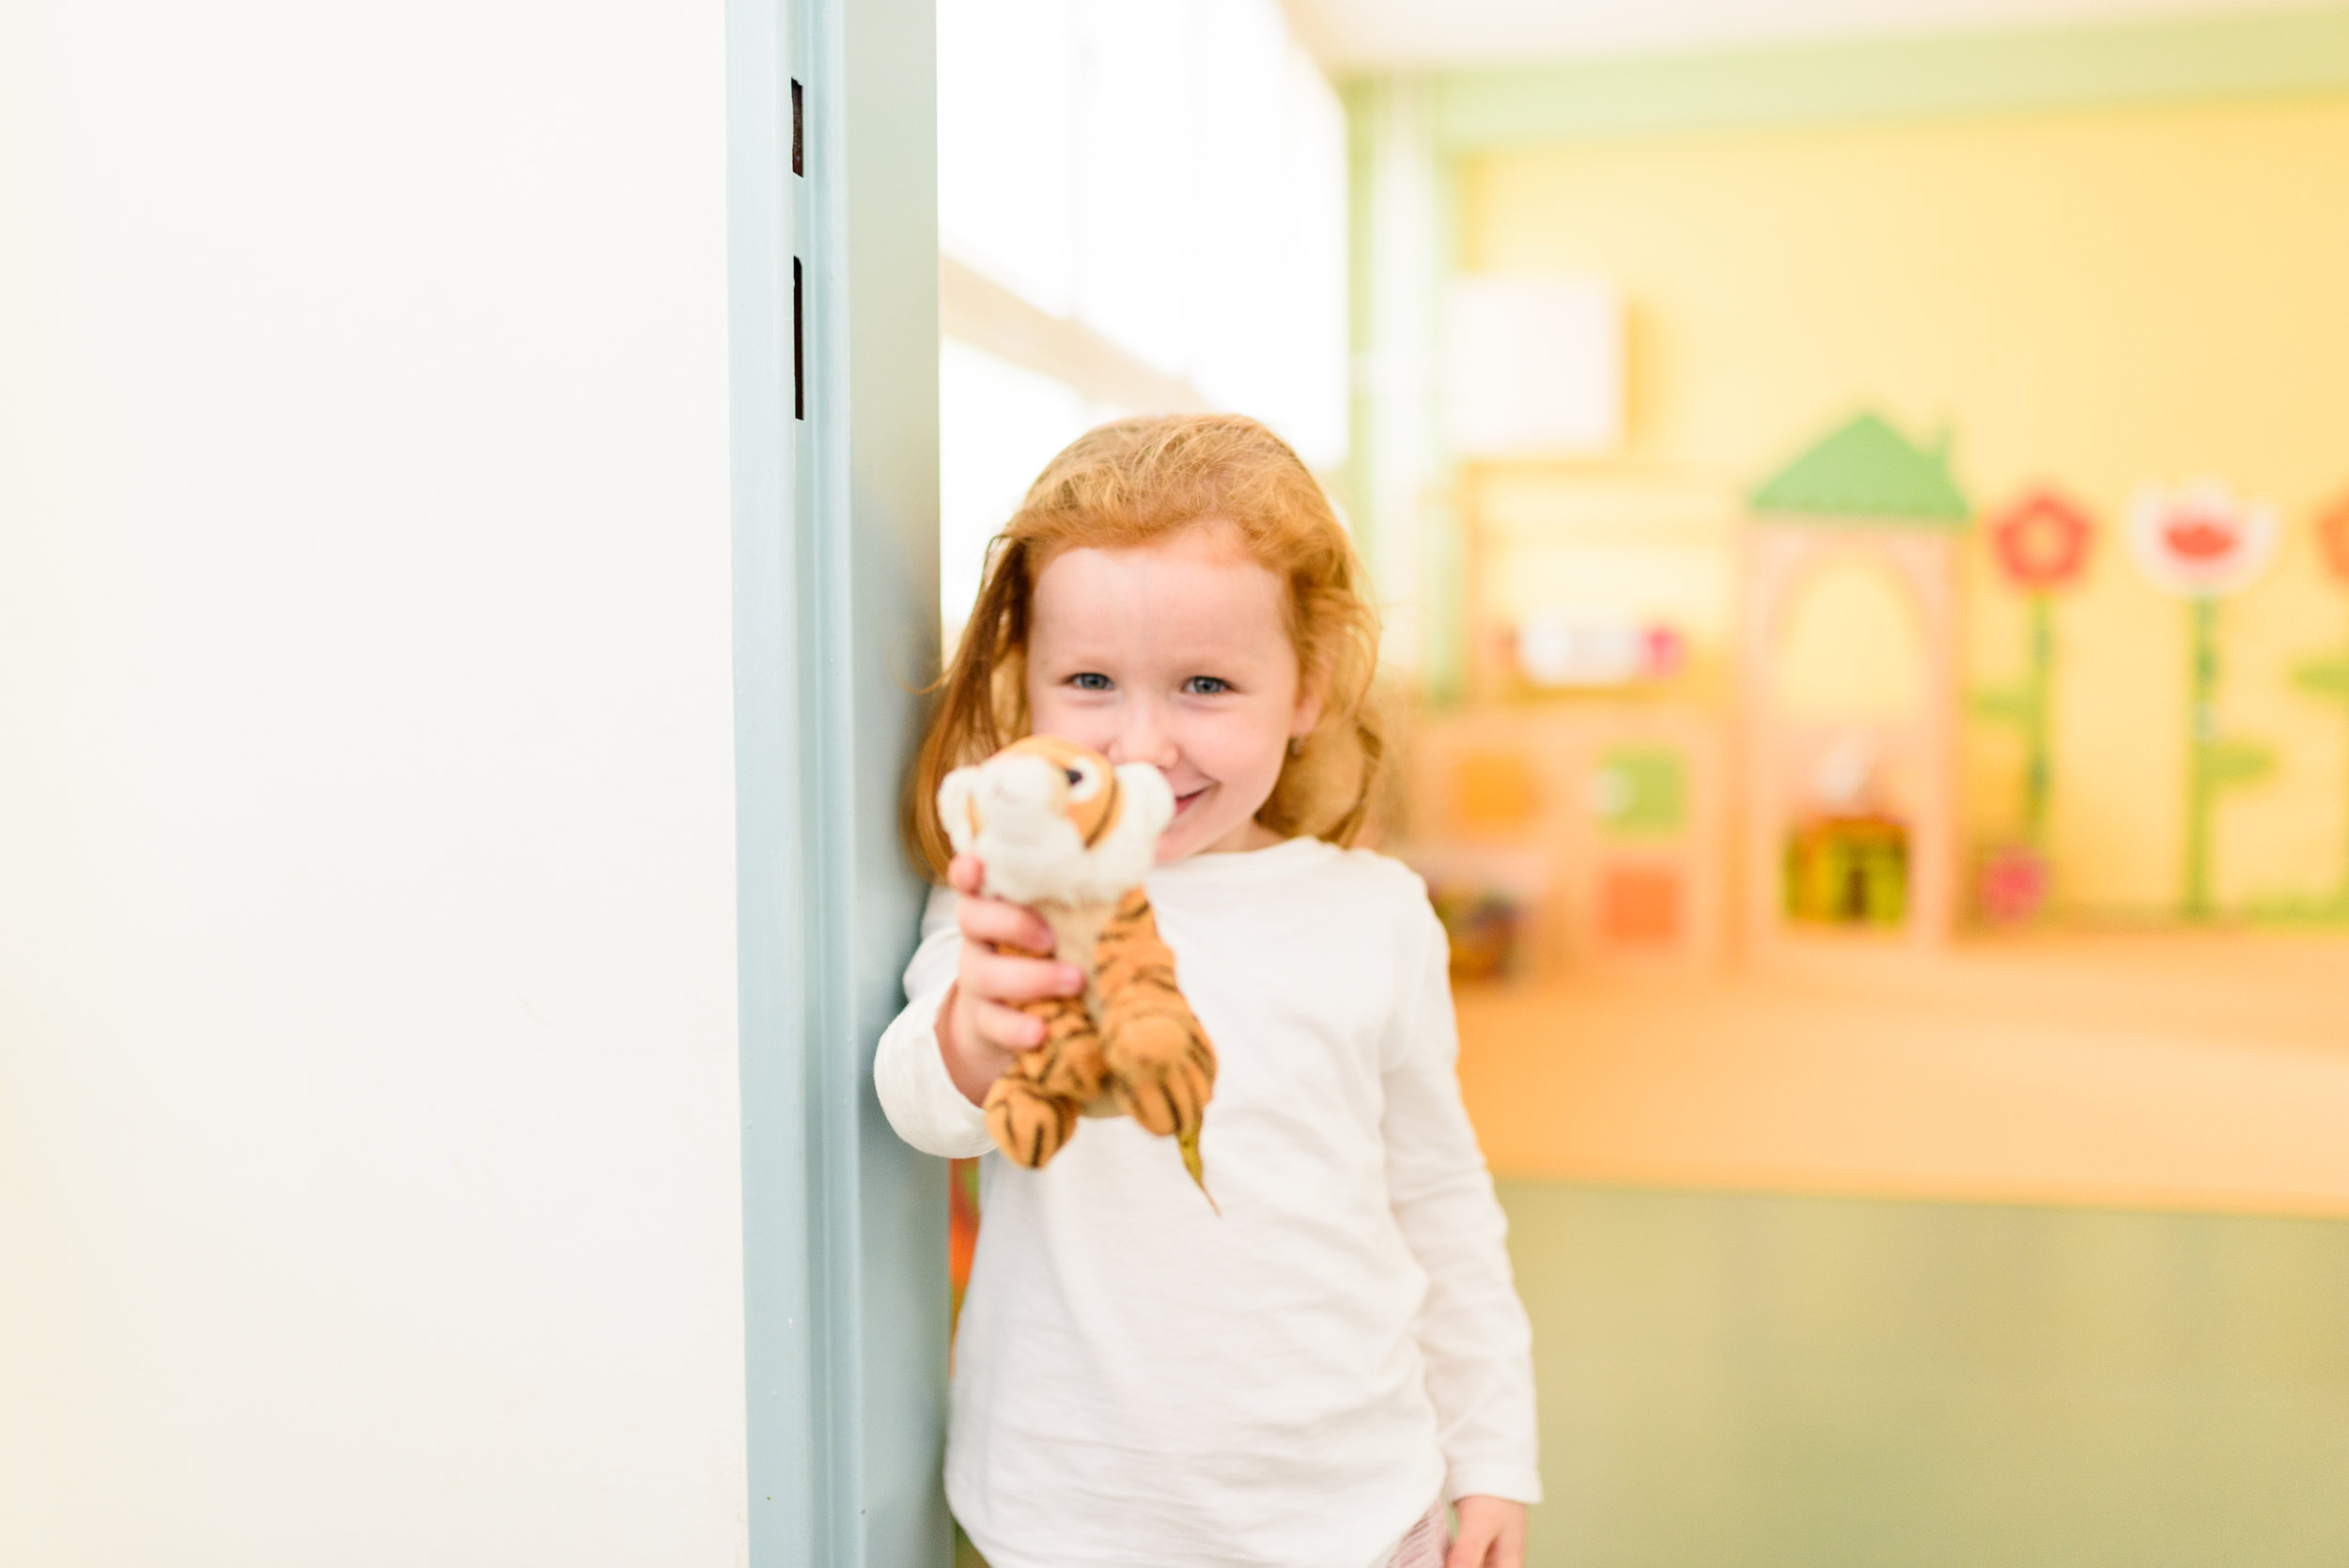 Daily routine - Many children, especially at the age of 5, 6 do not need afternoon sleep anymore. For these children rest areas are prepared, where they can have an afternoon rest, but nobody forces them to sleep.